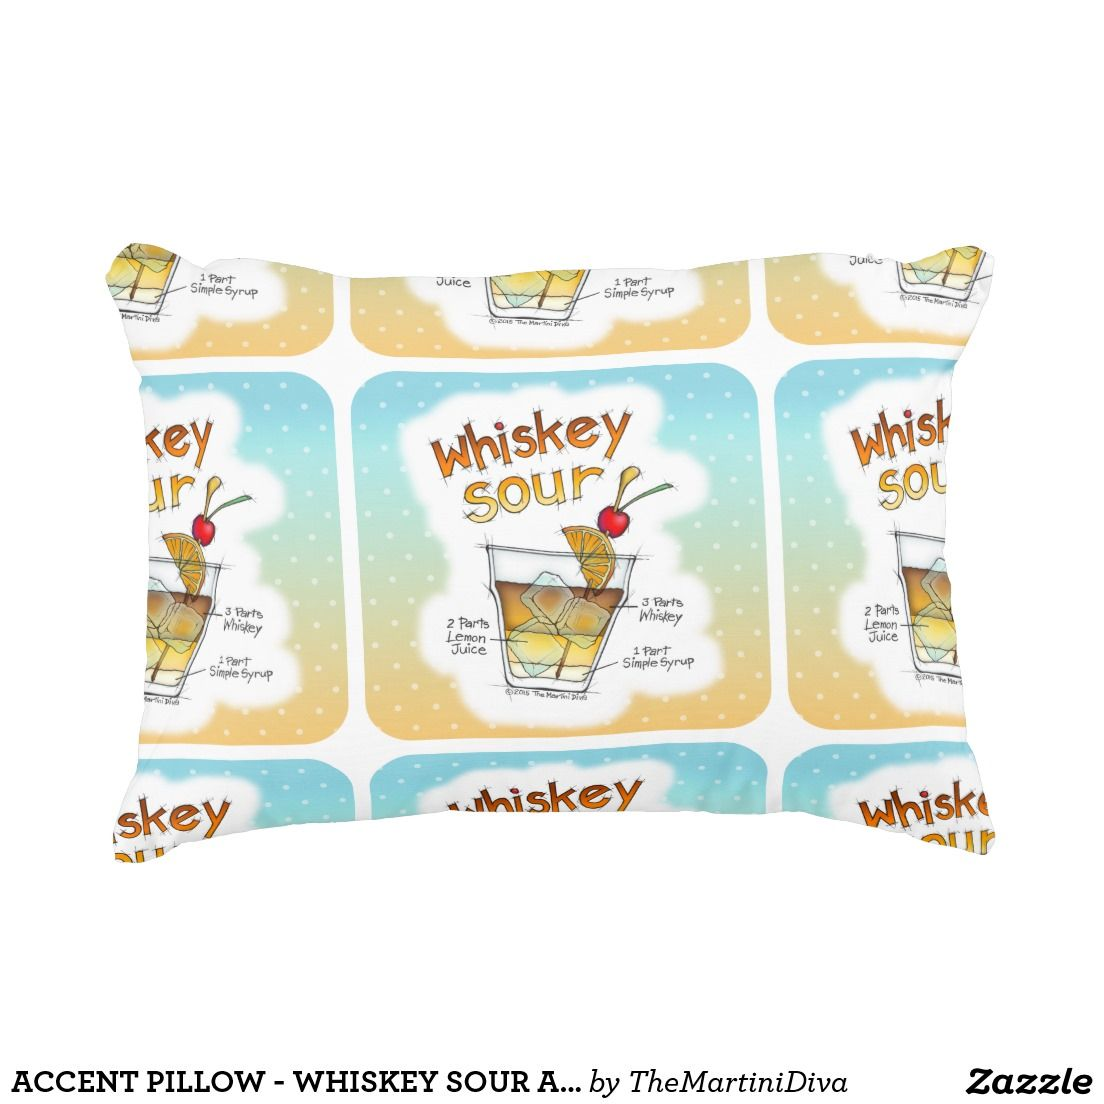 ACCENT PILLOW - WHISKEY SOUR ART with RECIPE PRINTED ON THE BACK